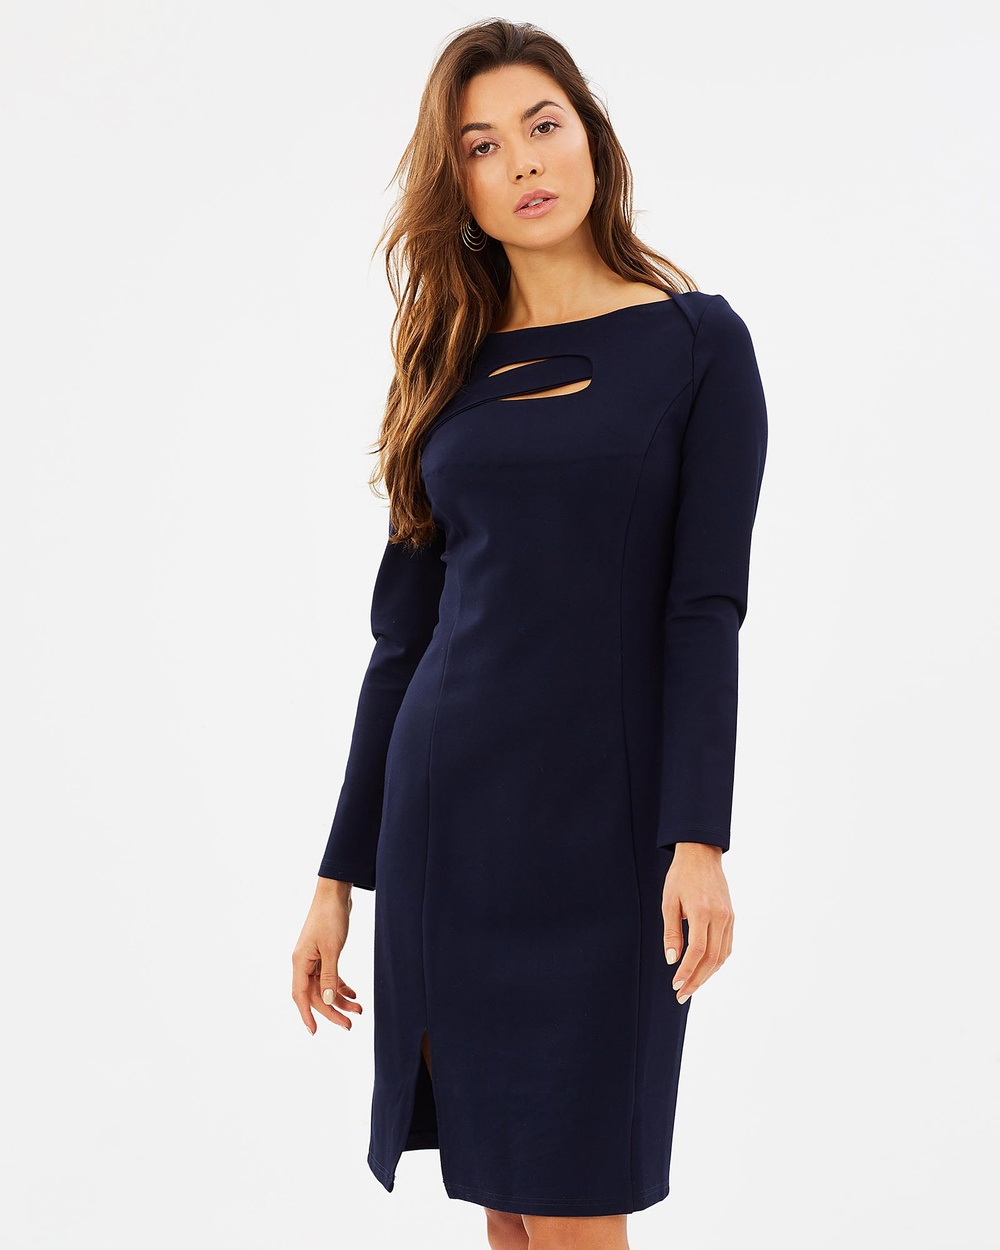 Privilege Cosmopolitan Cutout Dress Dresses Navy Cosmopolitan Cutout Dress